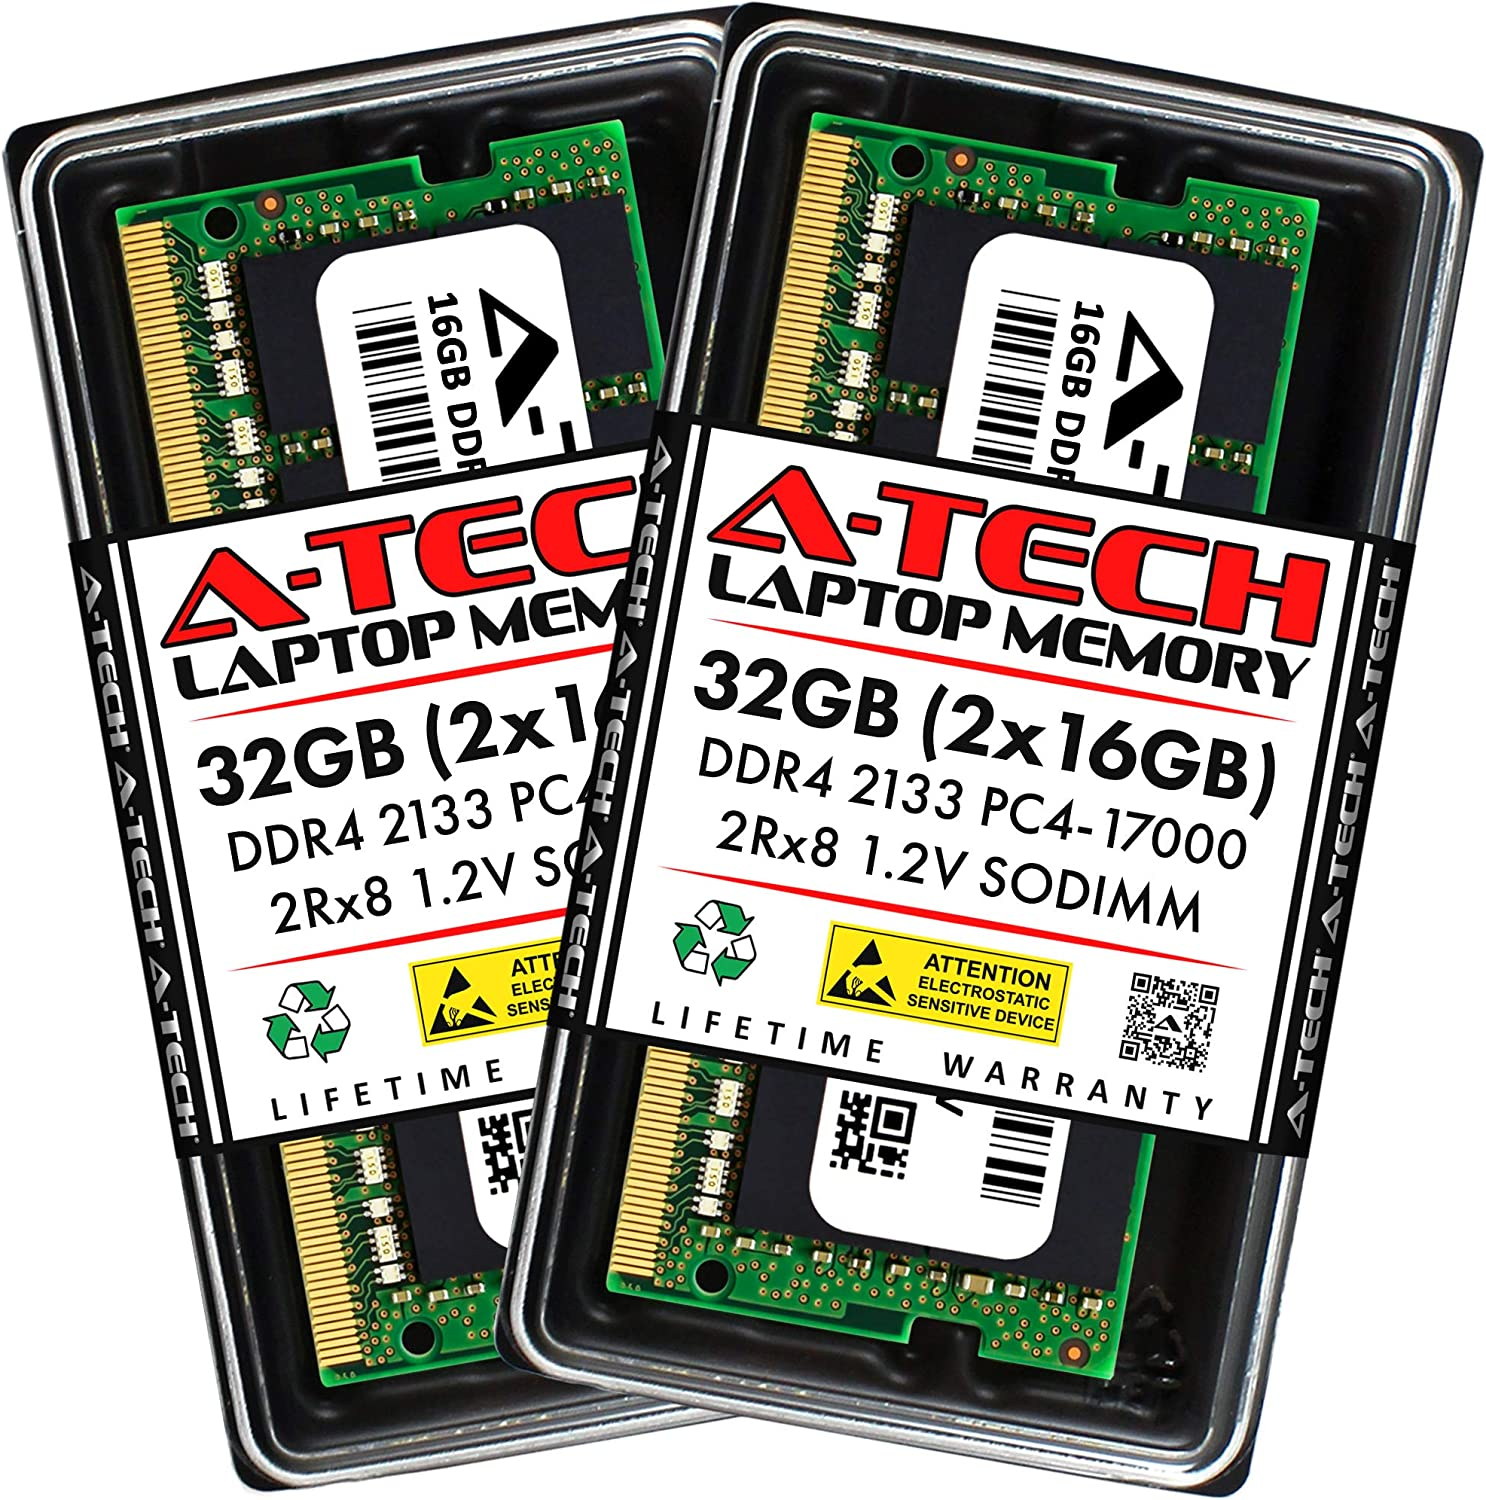 A-Tech 32GB (2x16GB) DDR4 2133MHz SODIMM PC4-17000 2Rx8 Dual Rank 260-Pin CL15 1.2V Non-ECC Unbuffered Notebook Laptop RAM Memory Upgrade Kit